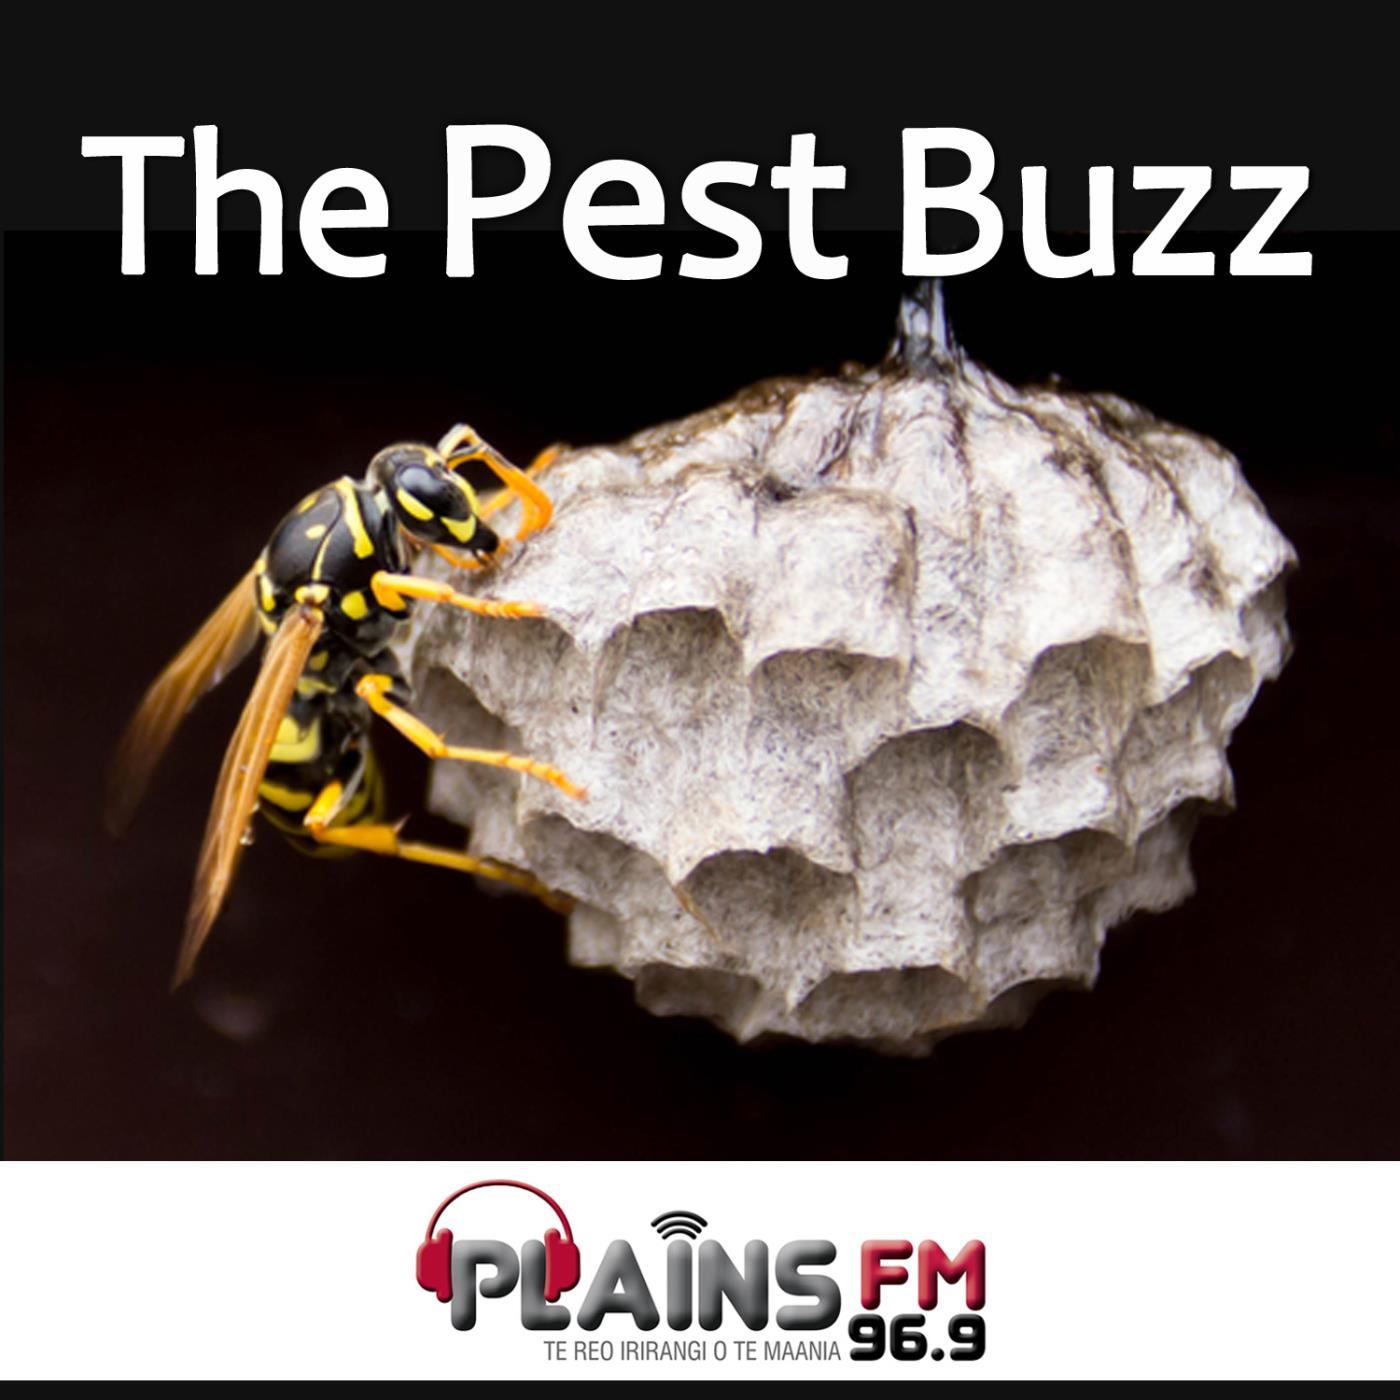 The Pest Buzz